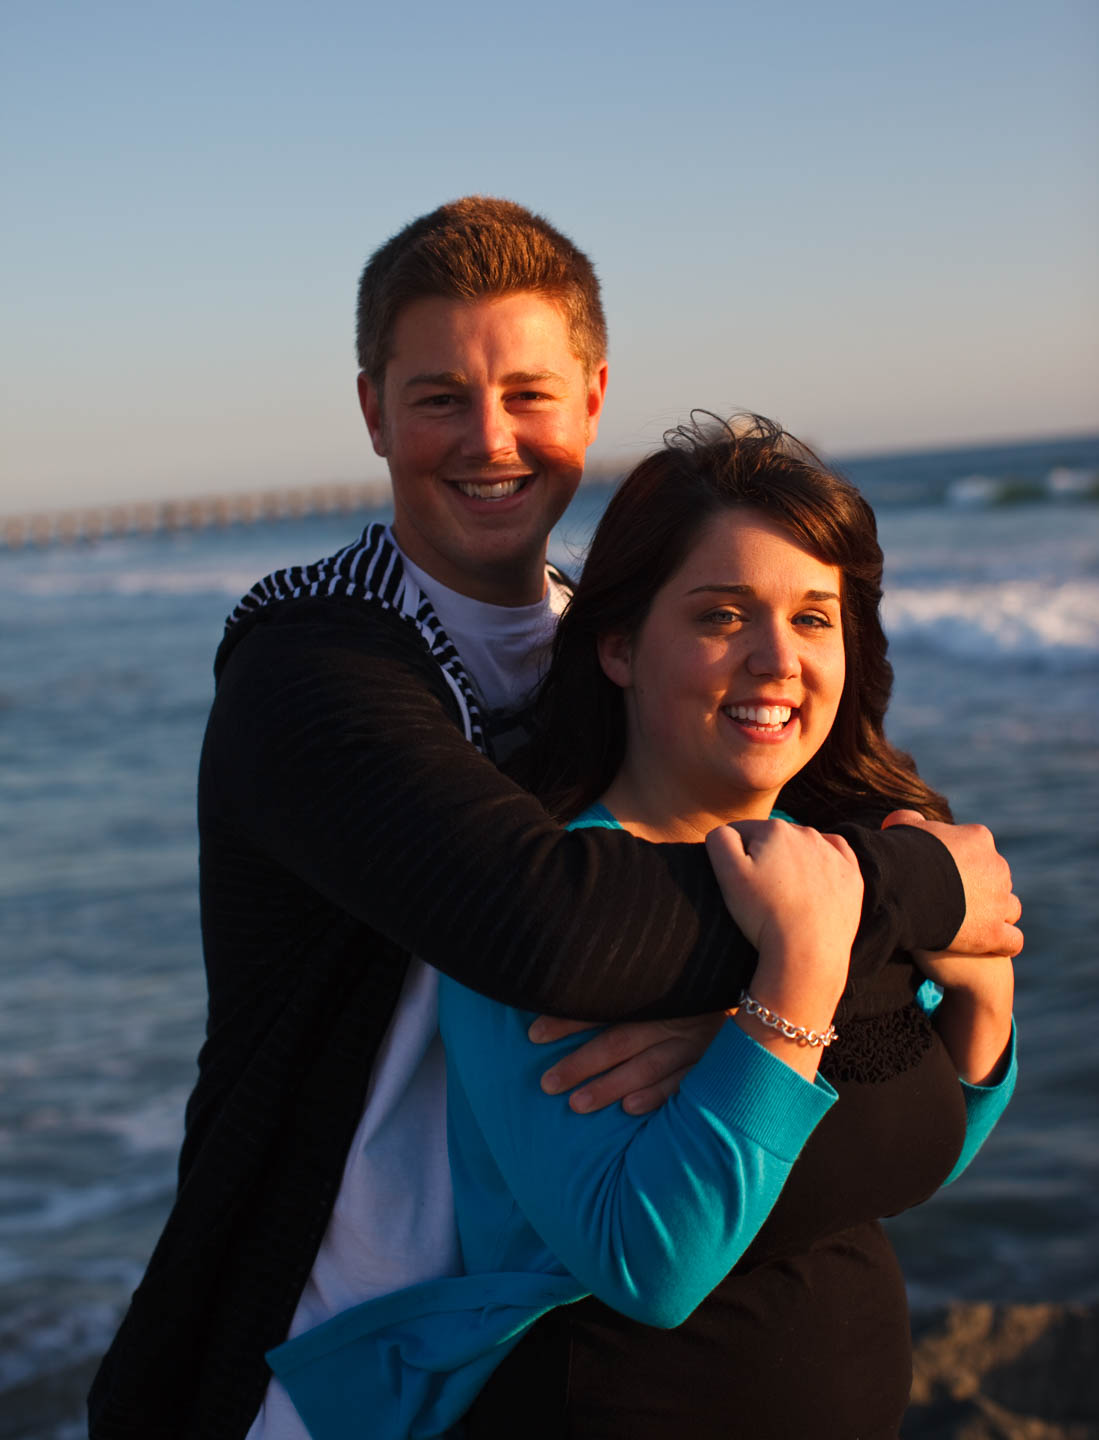 Lisa & Noah's engagement photos at the beach in Newport